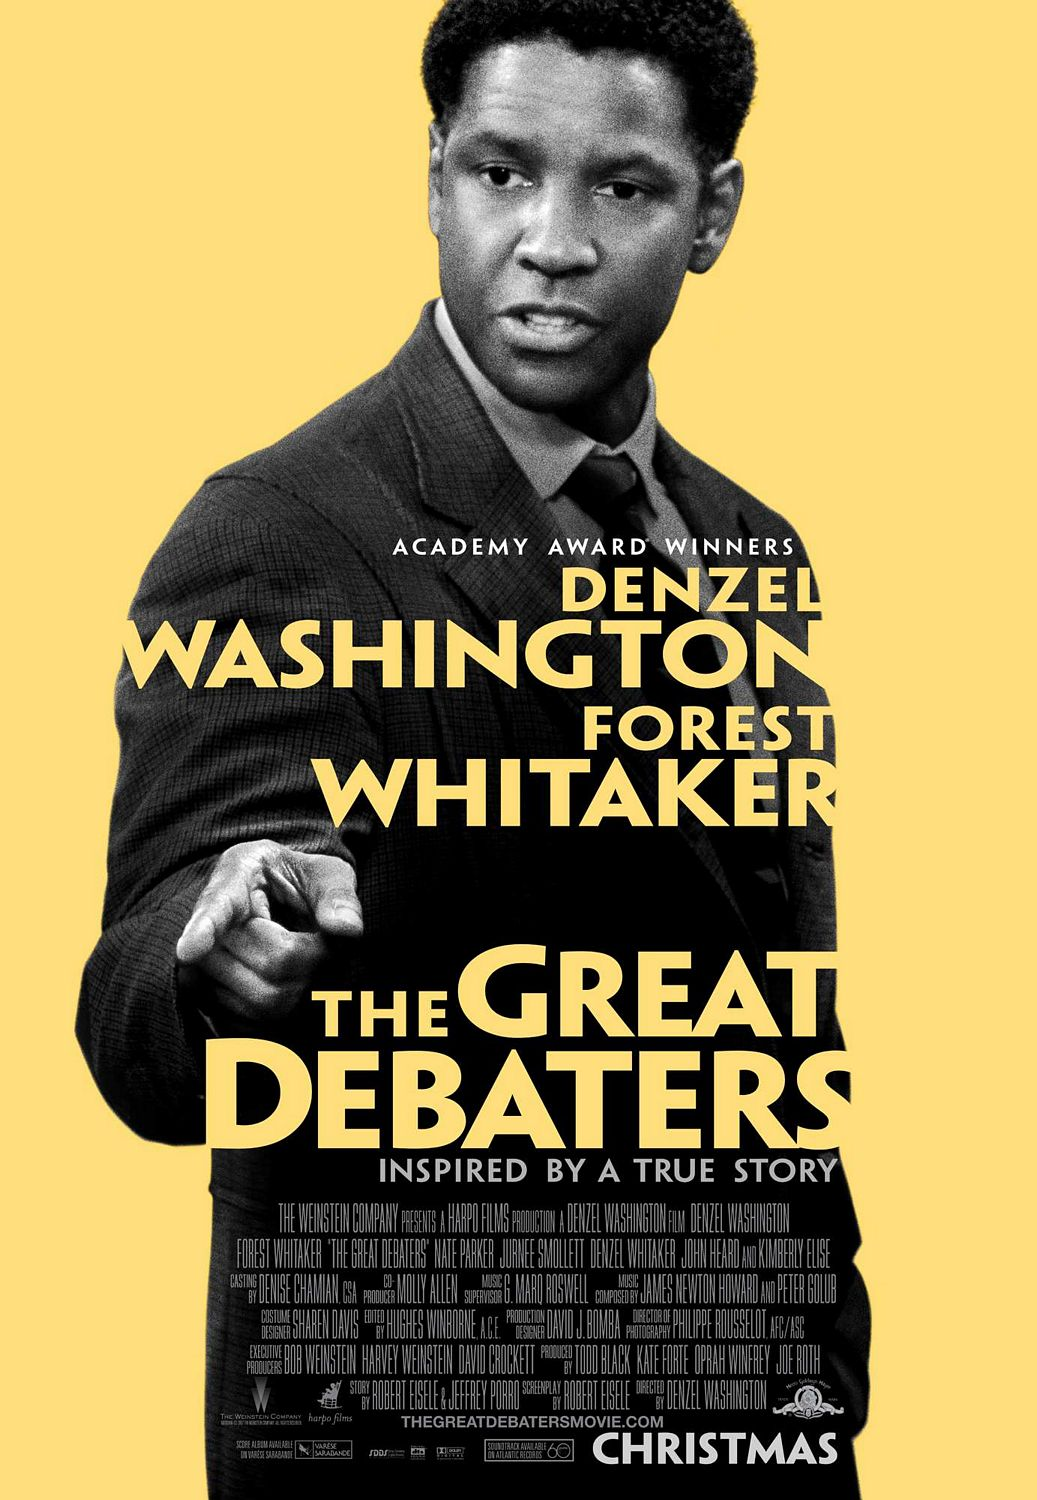 the great debaters movie Watch the great debaters (2007) online free full movie putlocker marshall, texas, described by james farmer, jr as 'the last city to surrender after the civil war,' is home to wiley college, where, in 1935-36, inspired.